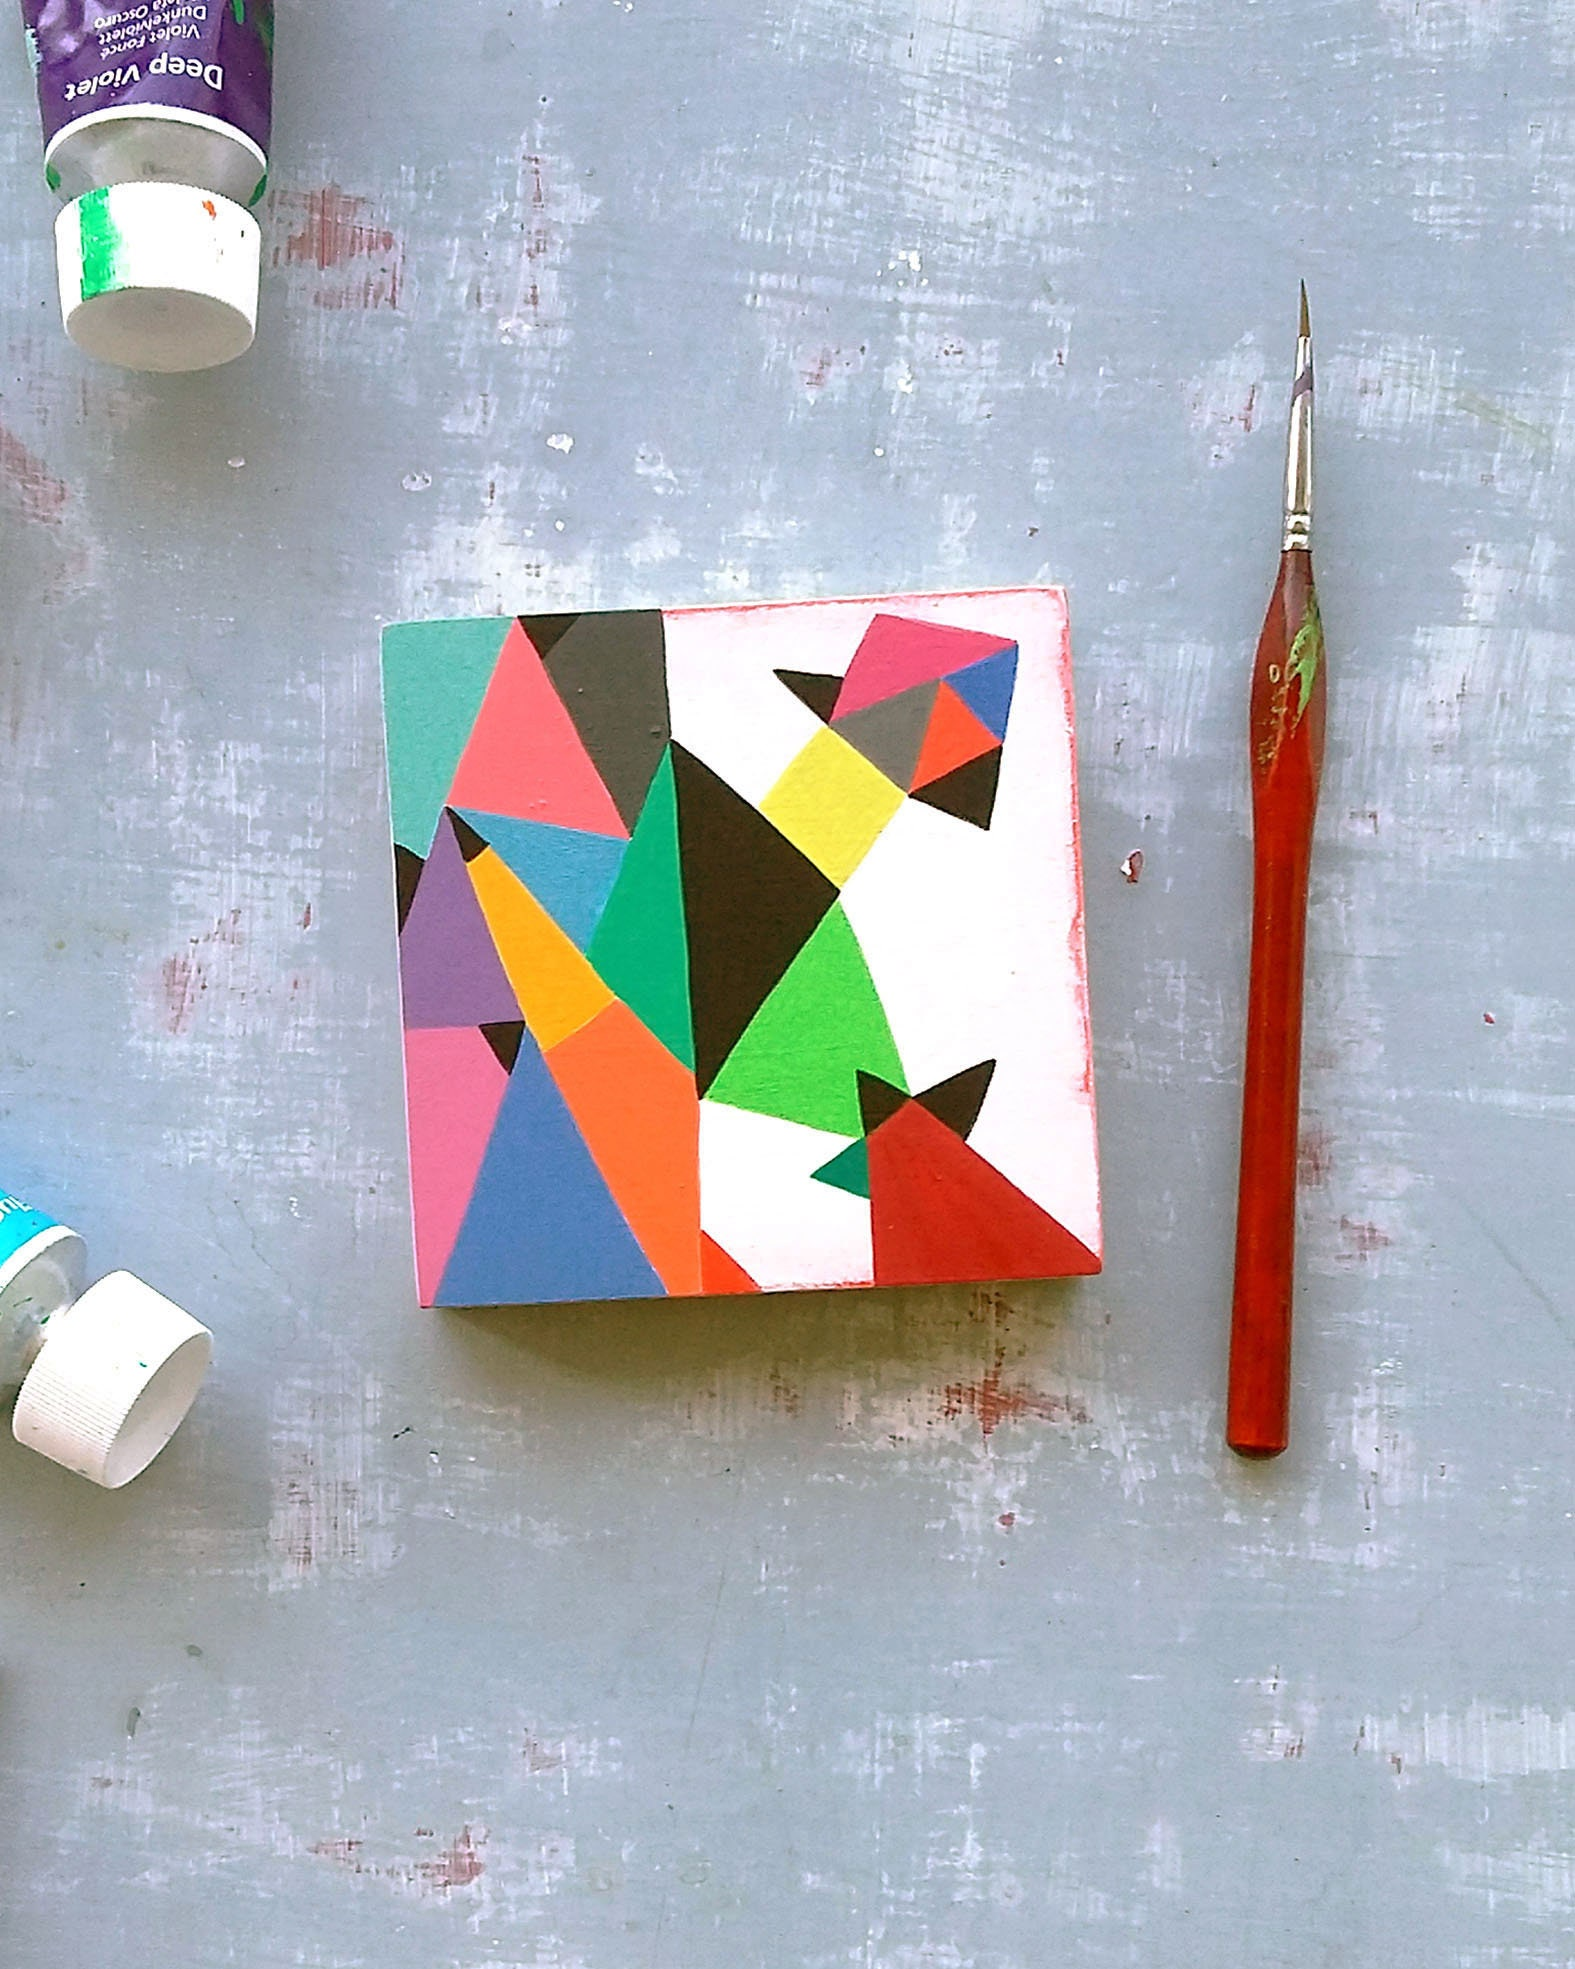 Composition_002, small abstract painting on wood - product image